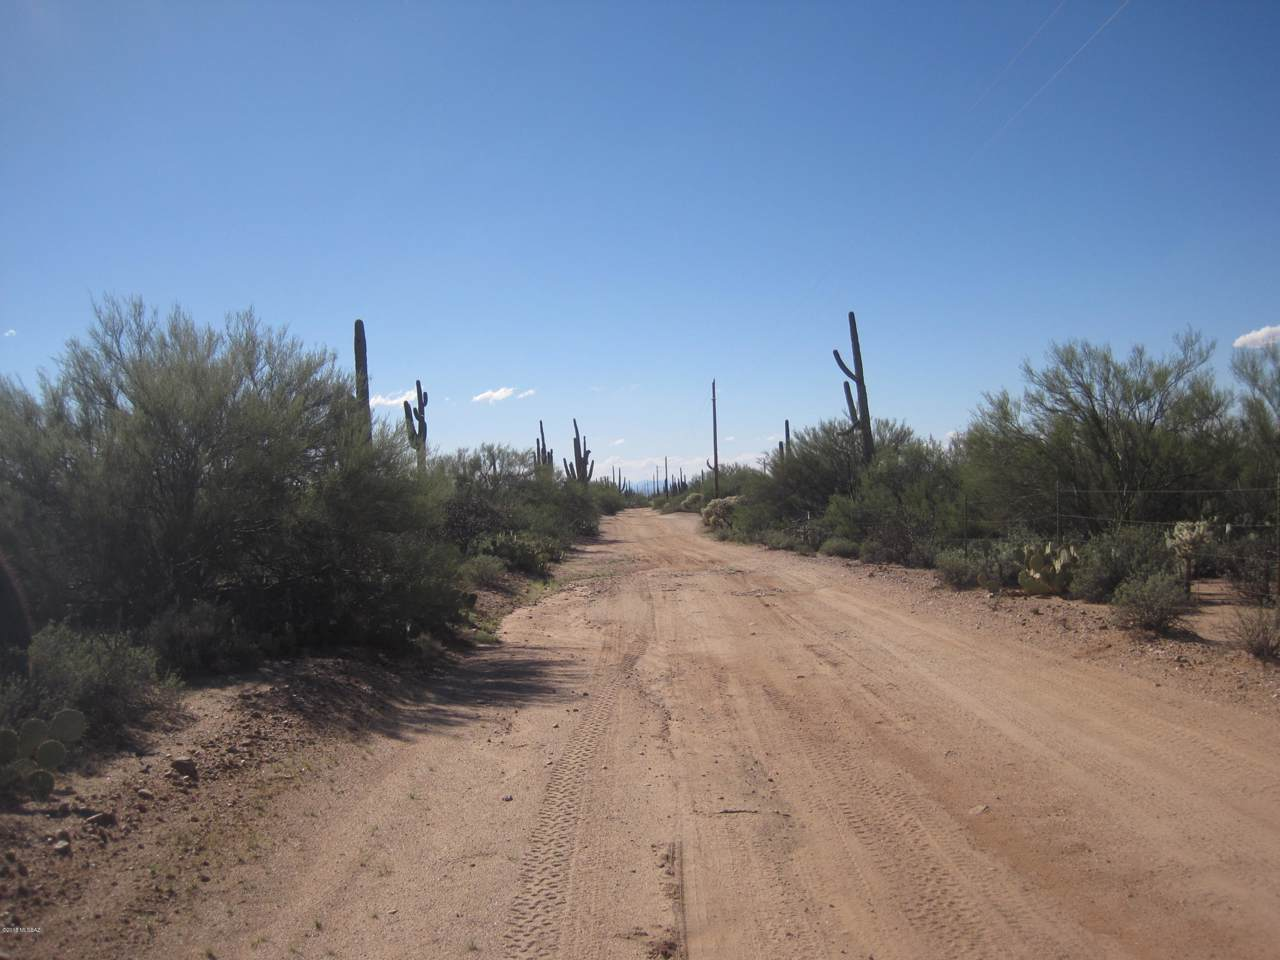 https://bt-photos.global.ssl.fastly.net/tucson/1280_boomver_1_21925626-2.jpg